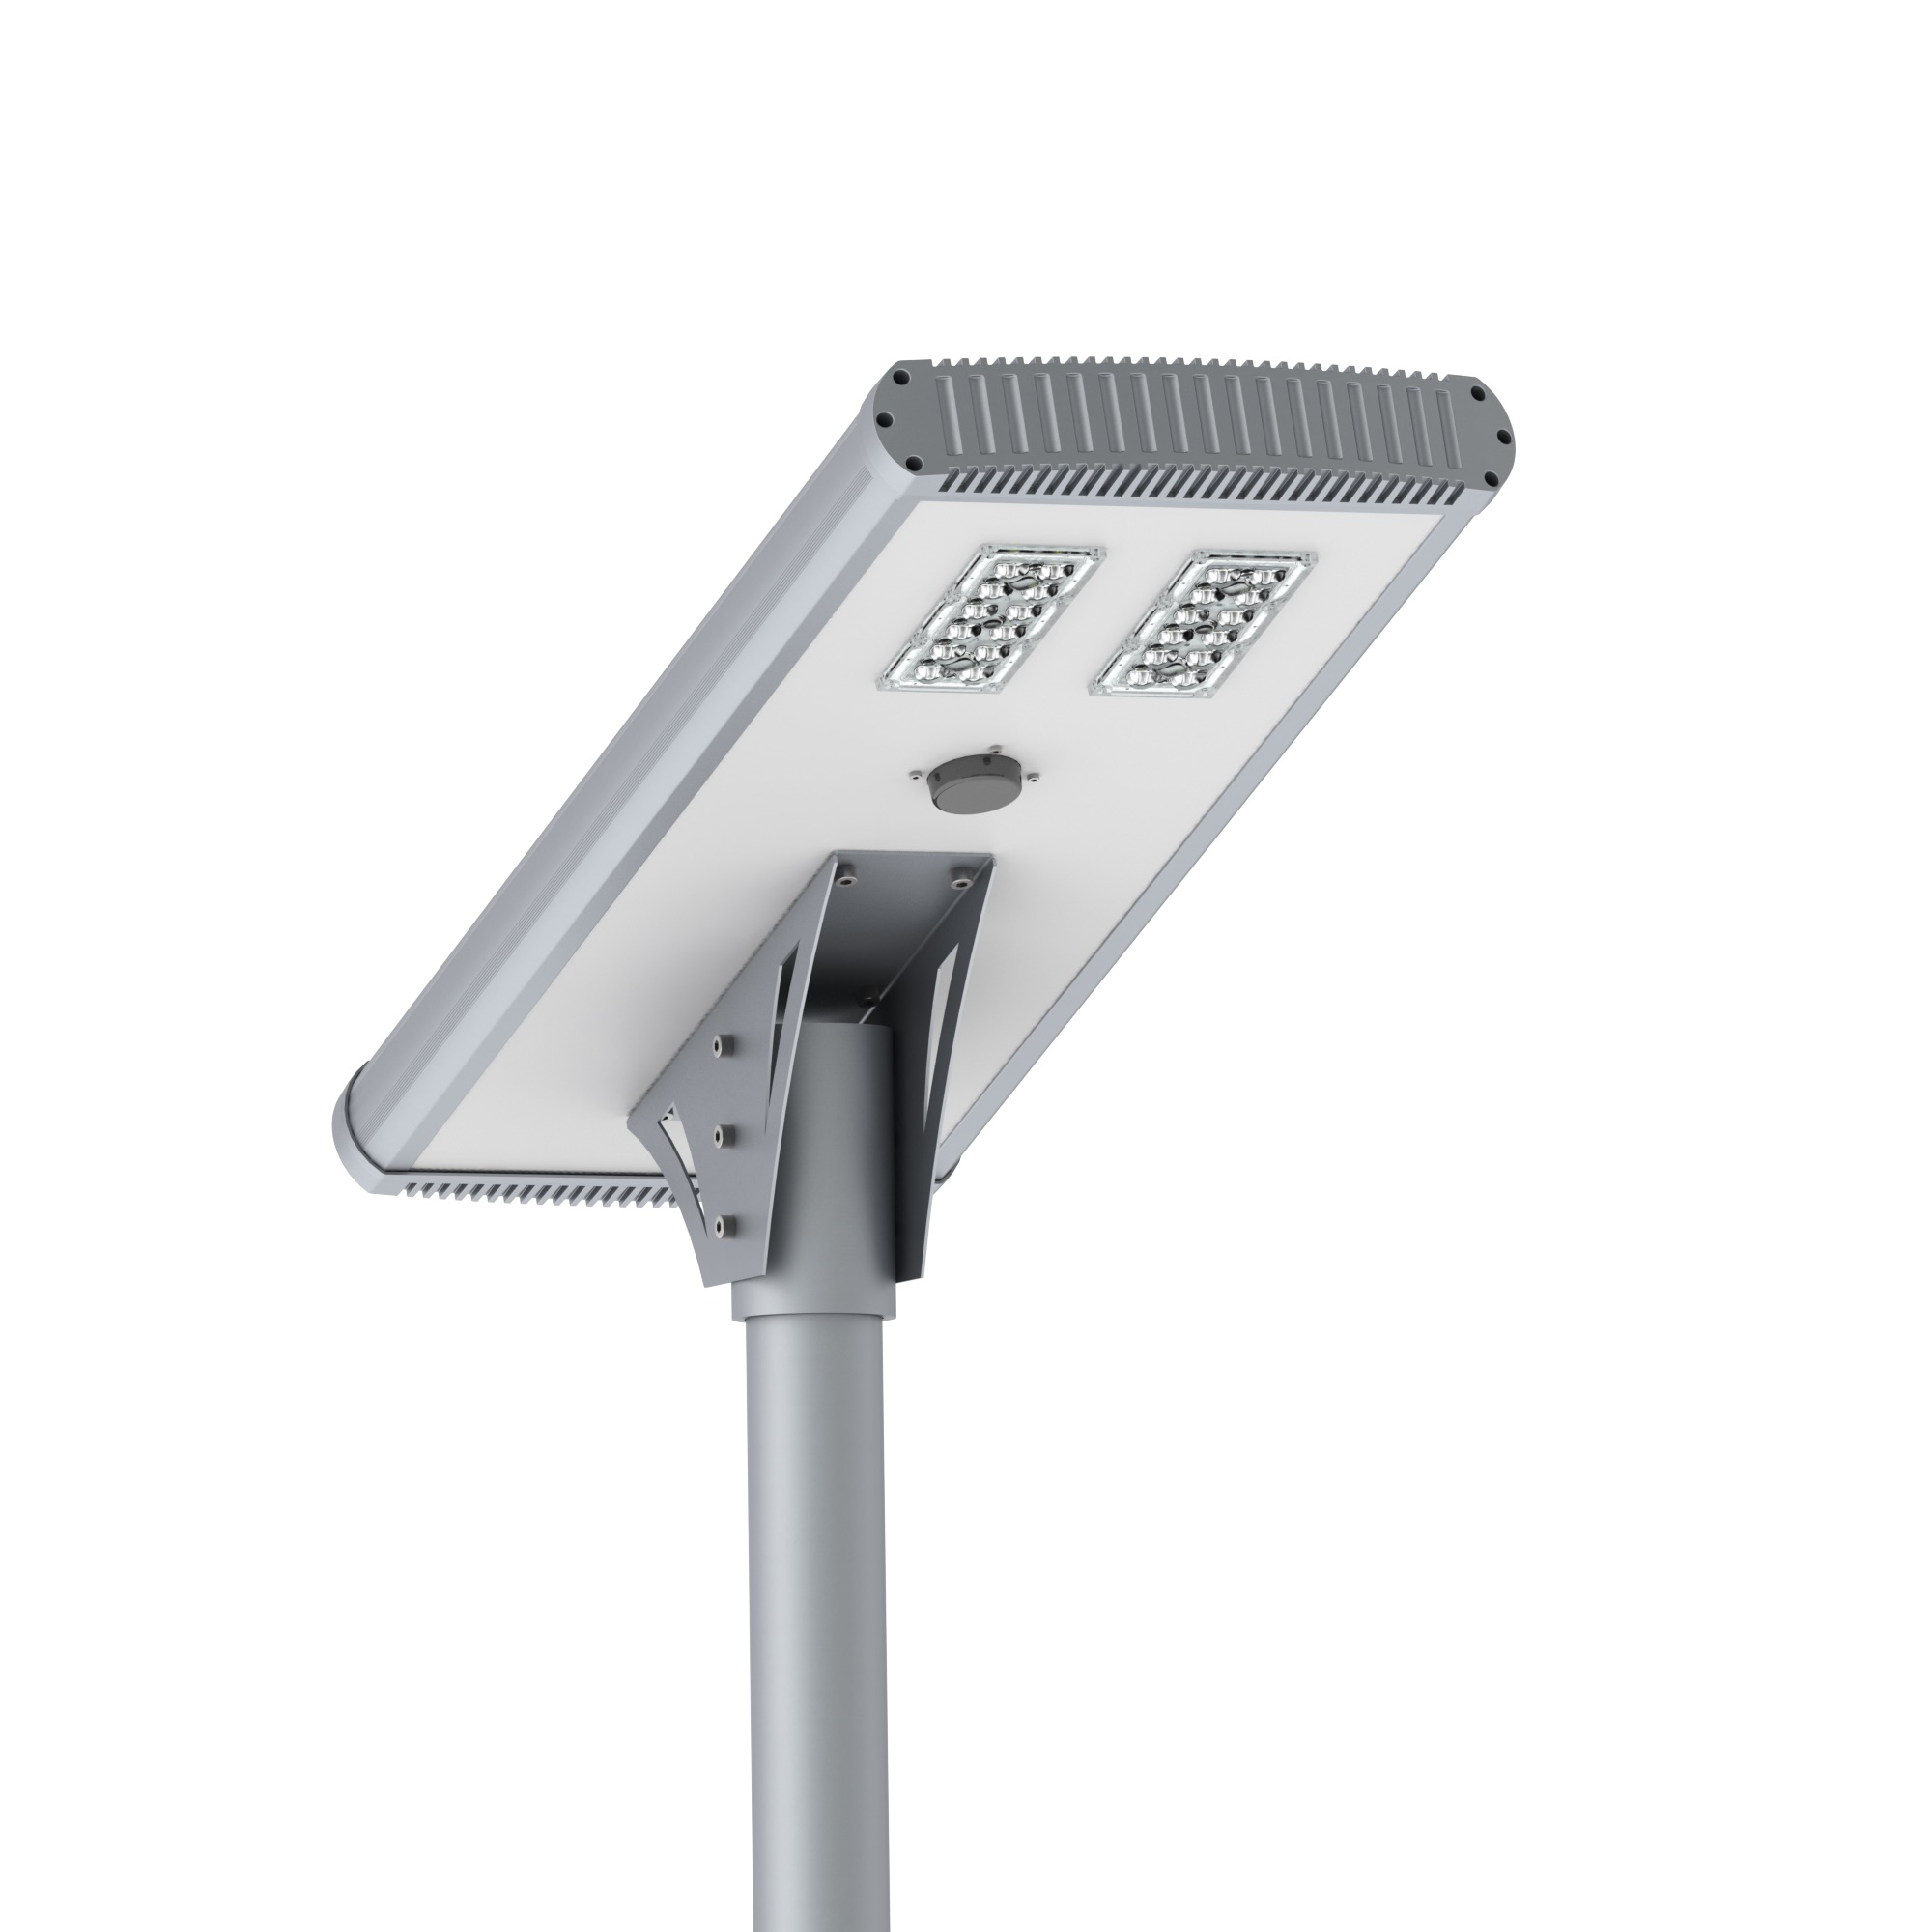 SLS1 Series All In One Solar Lighting